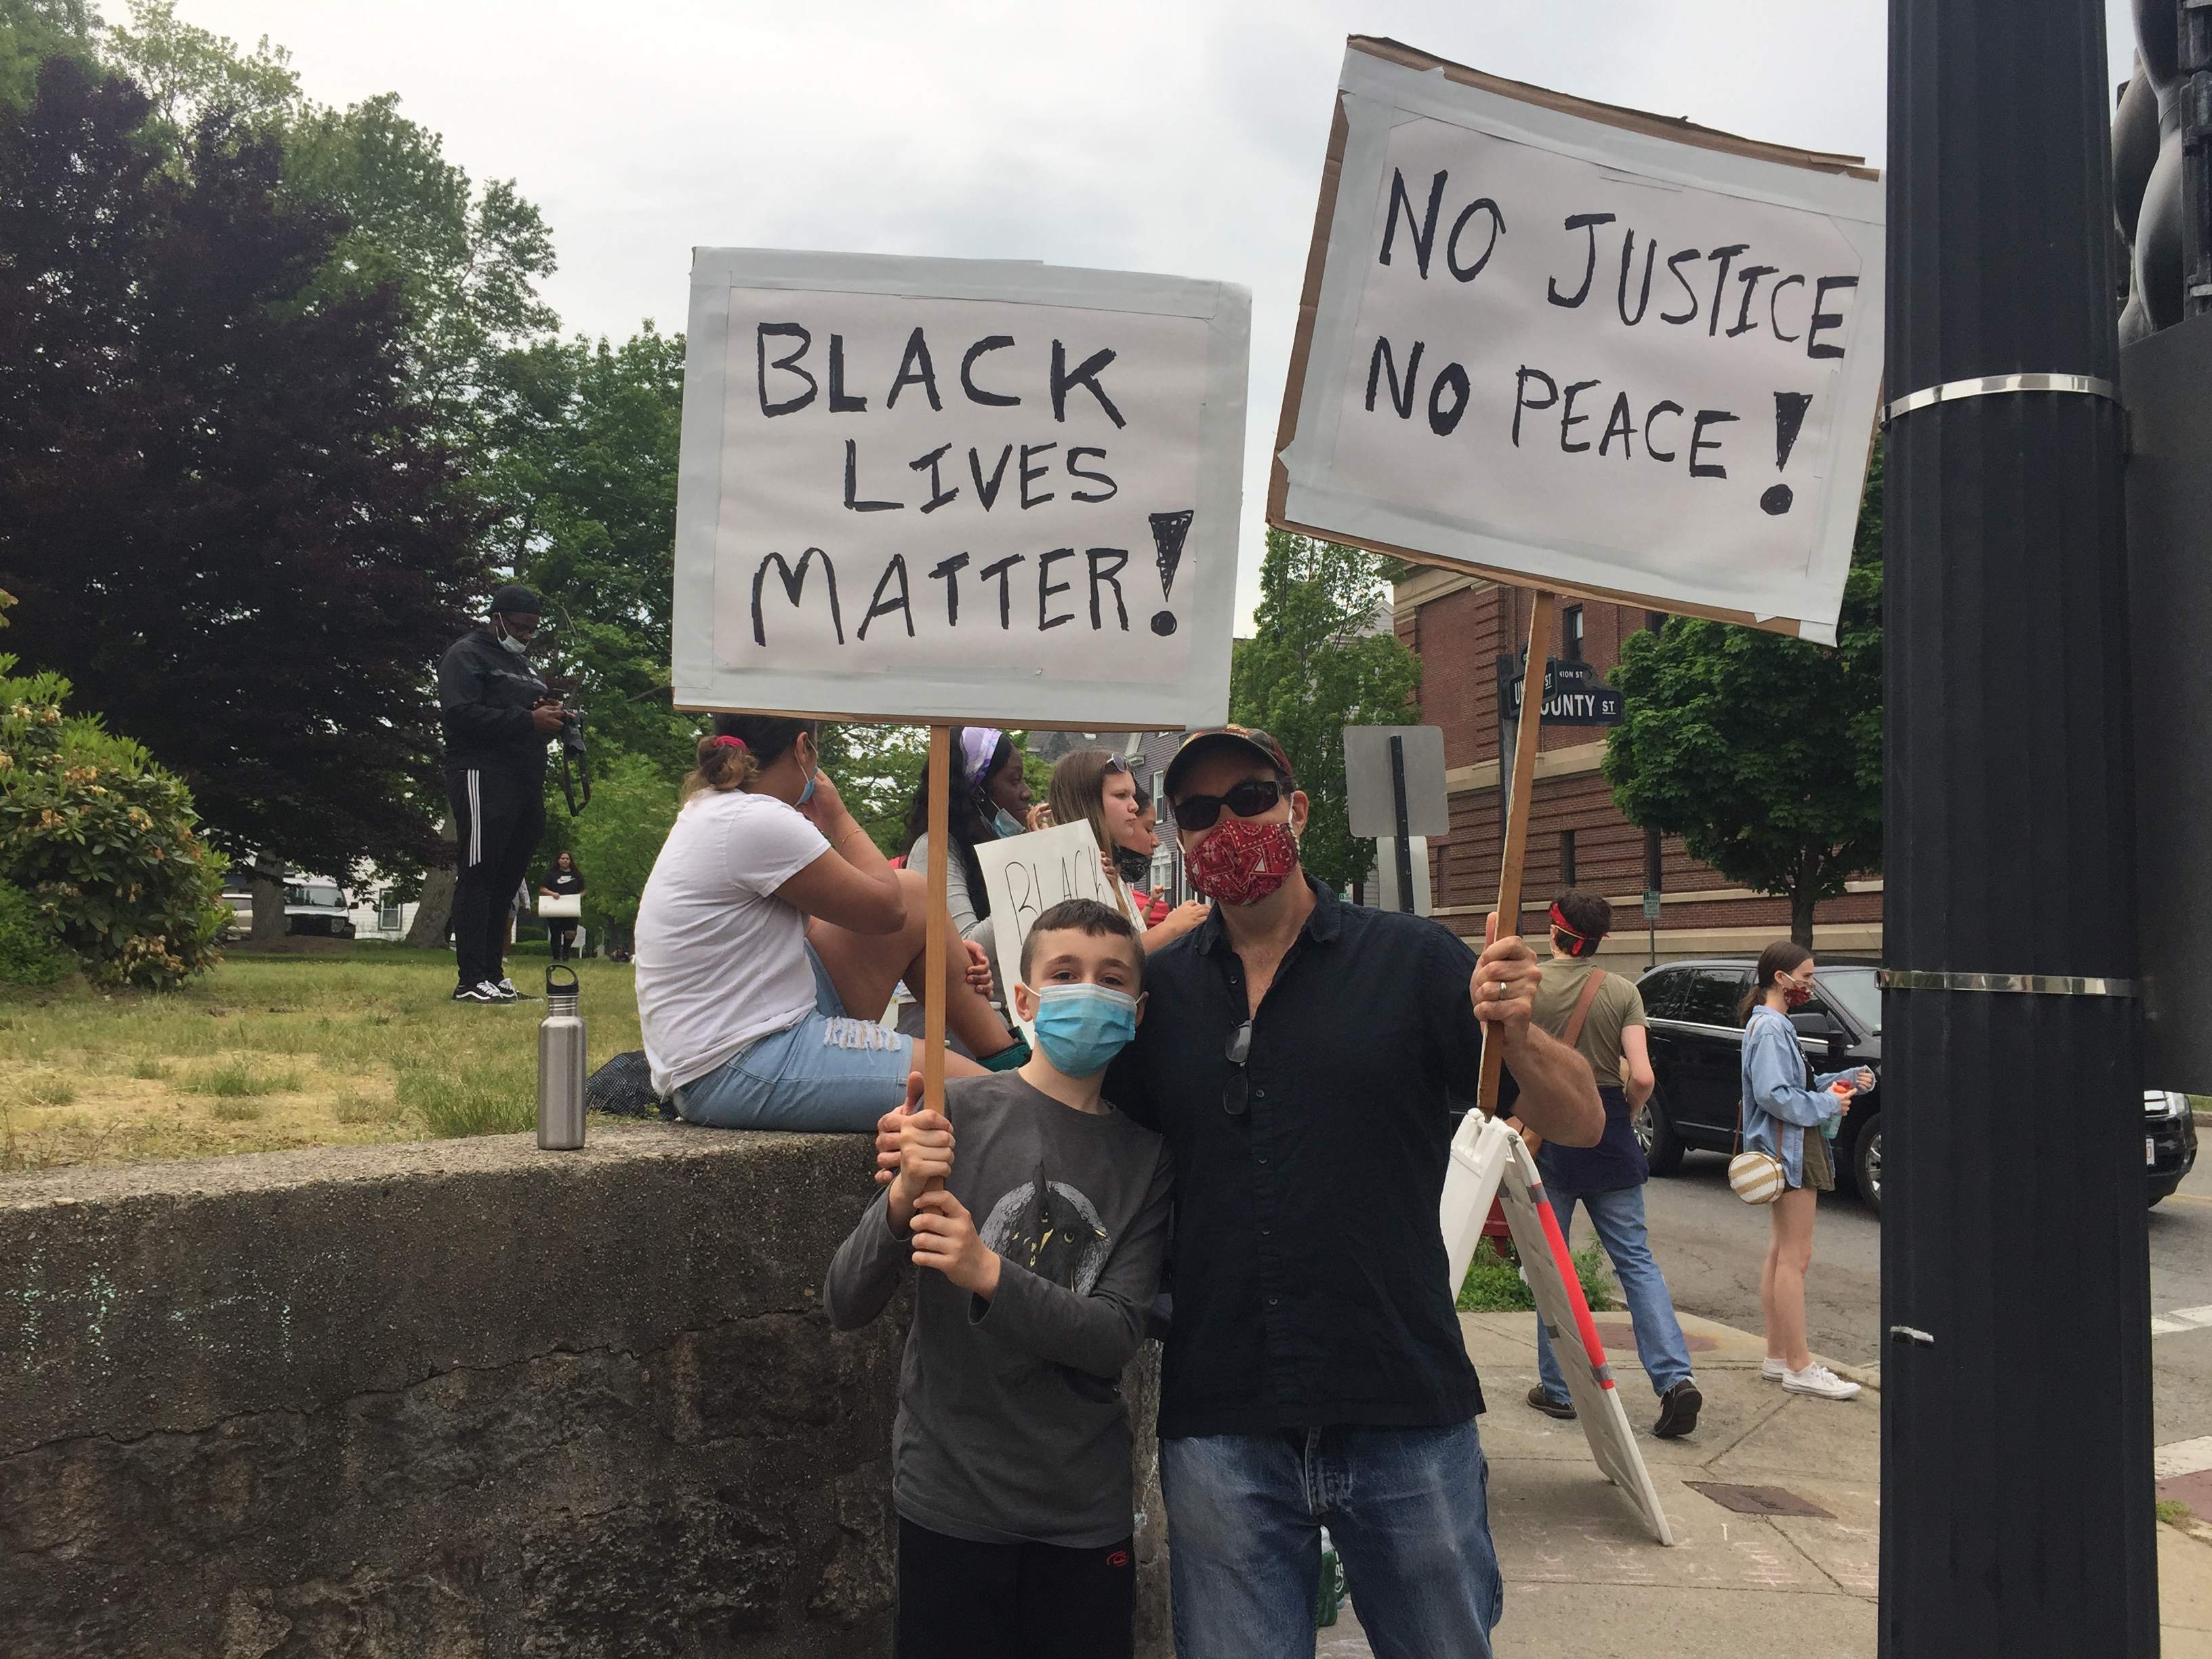 Resident Matthew Ryckebusch (right) and his son protesting in New Bedford on Wednesday.